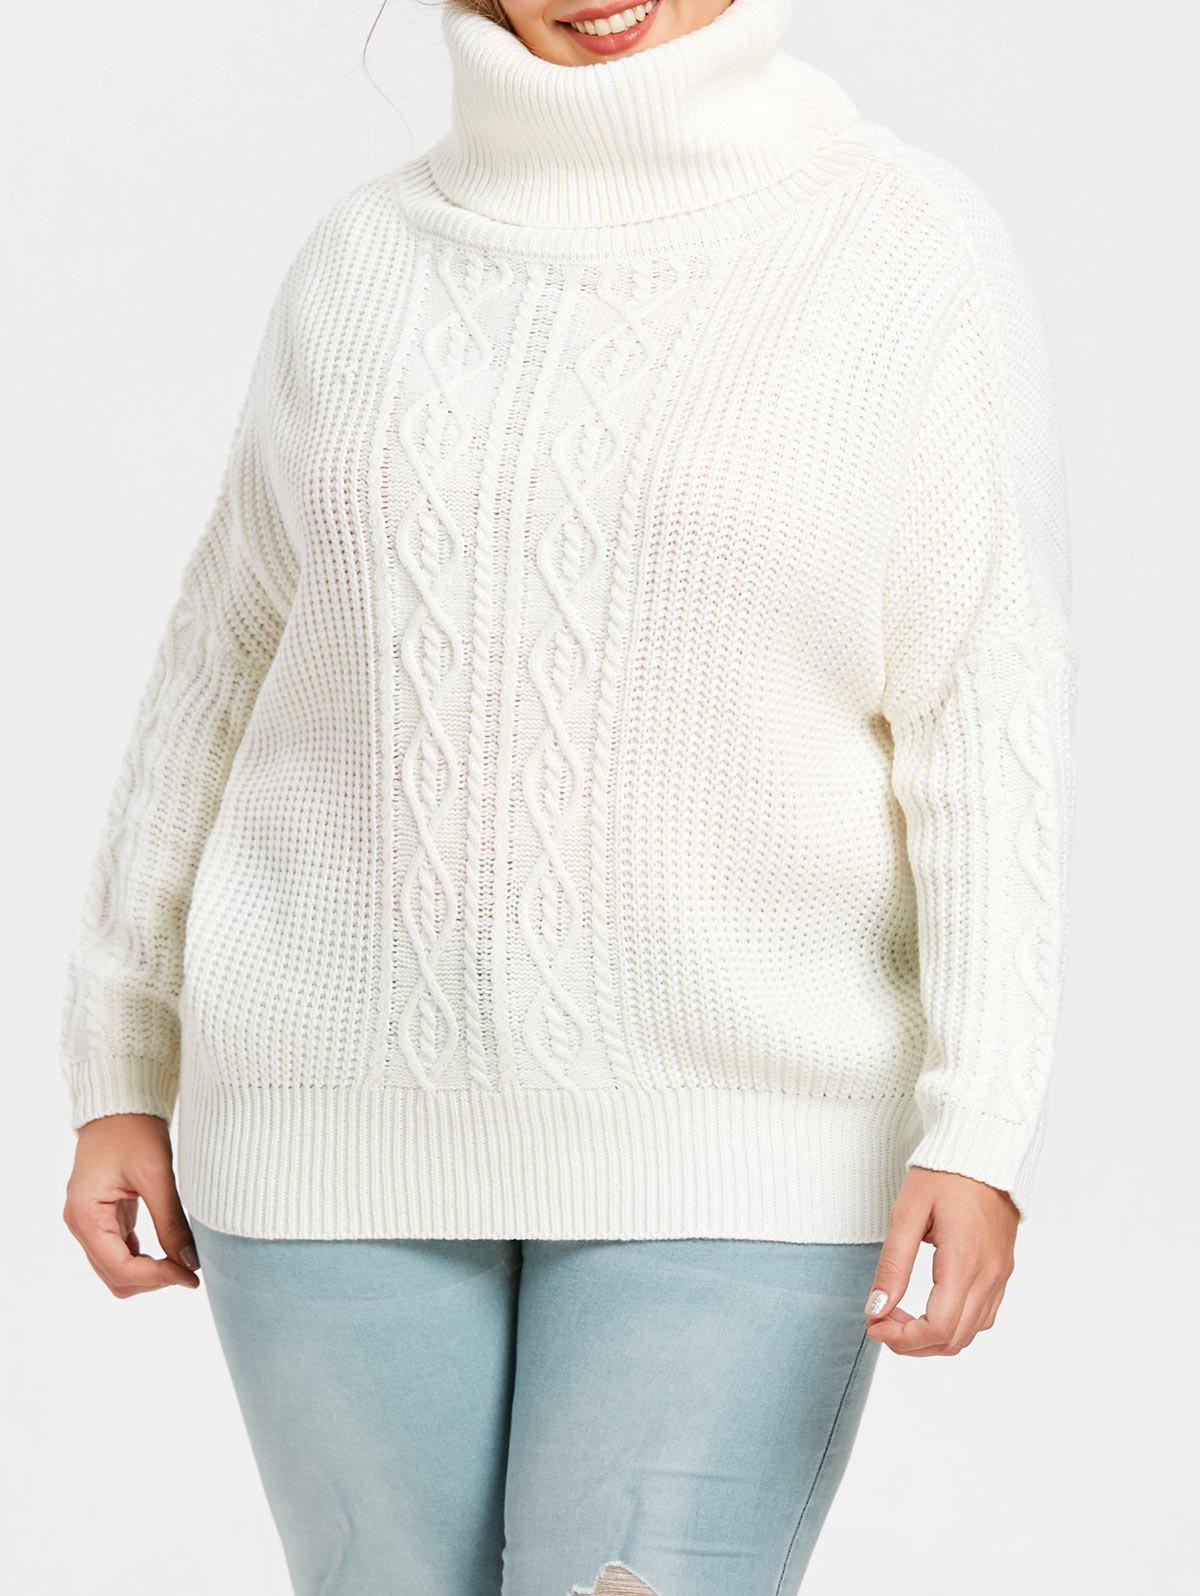 1bfee3732db 37% OFF  Turtleneck Plus Size Cable Knit Pullover Sweater